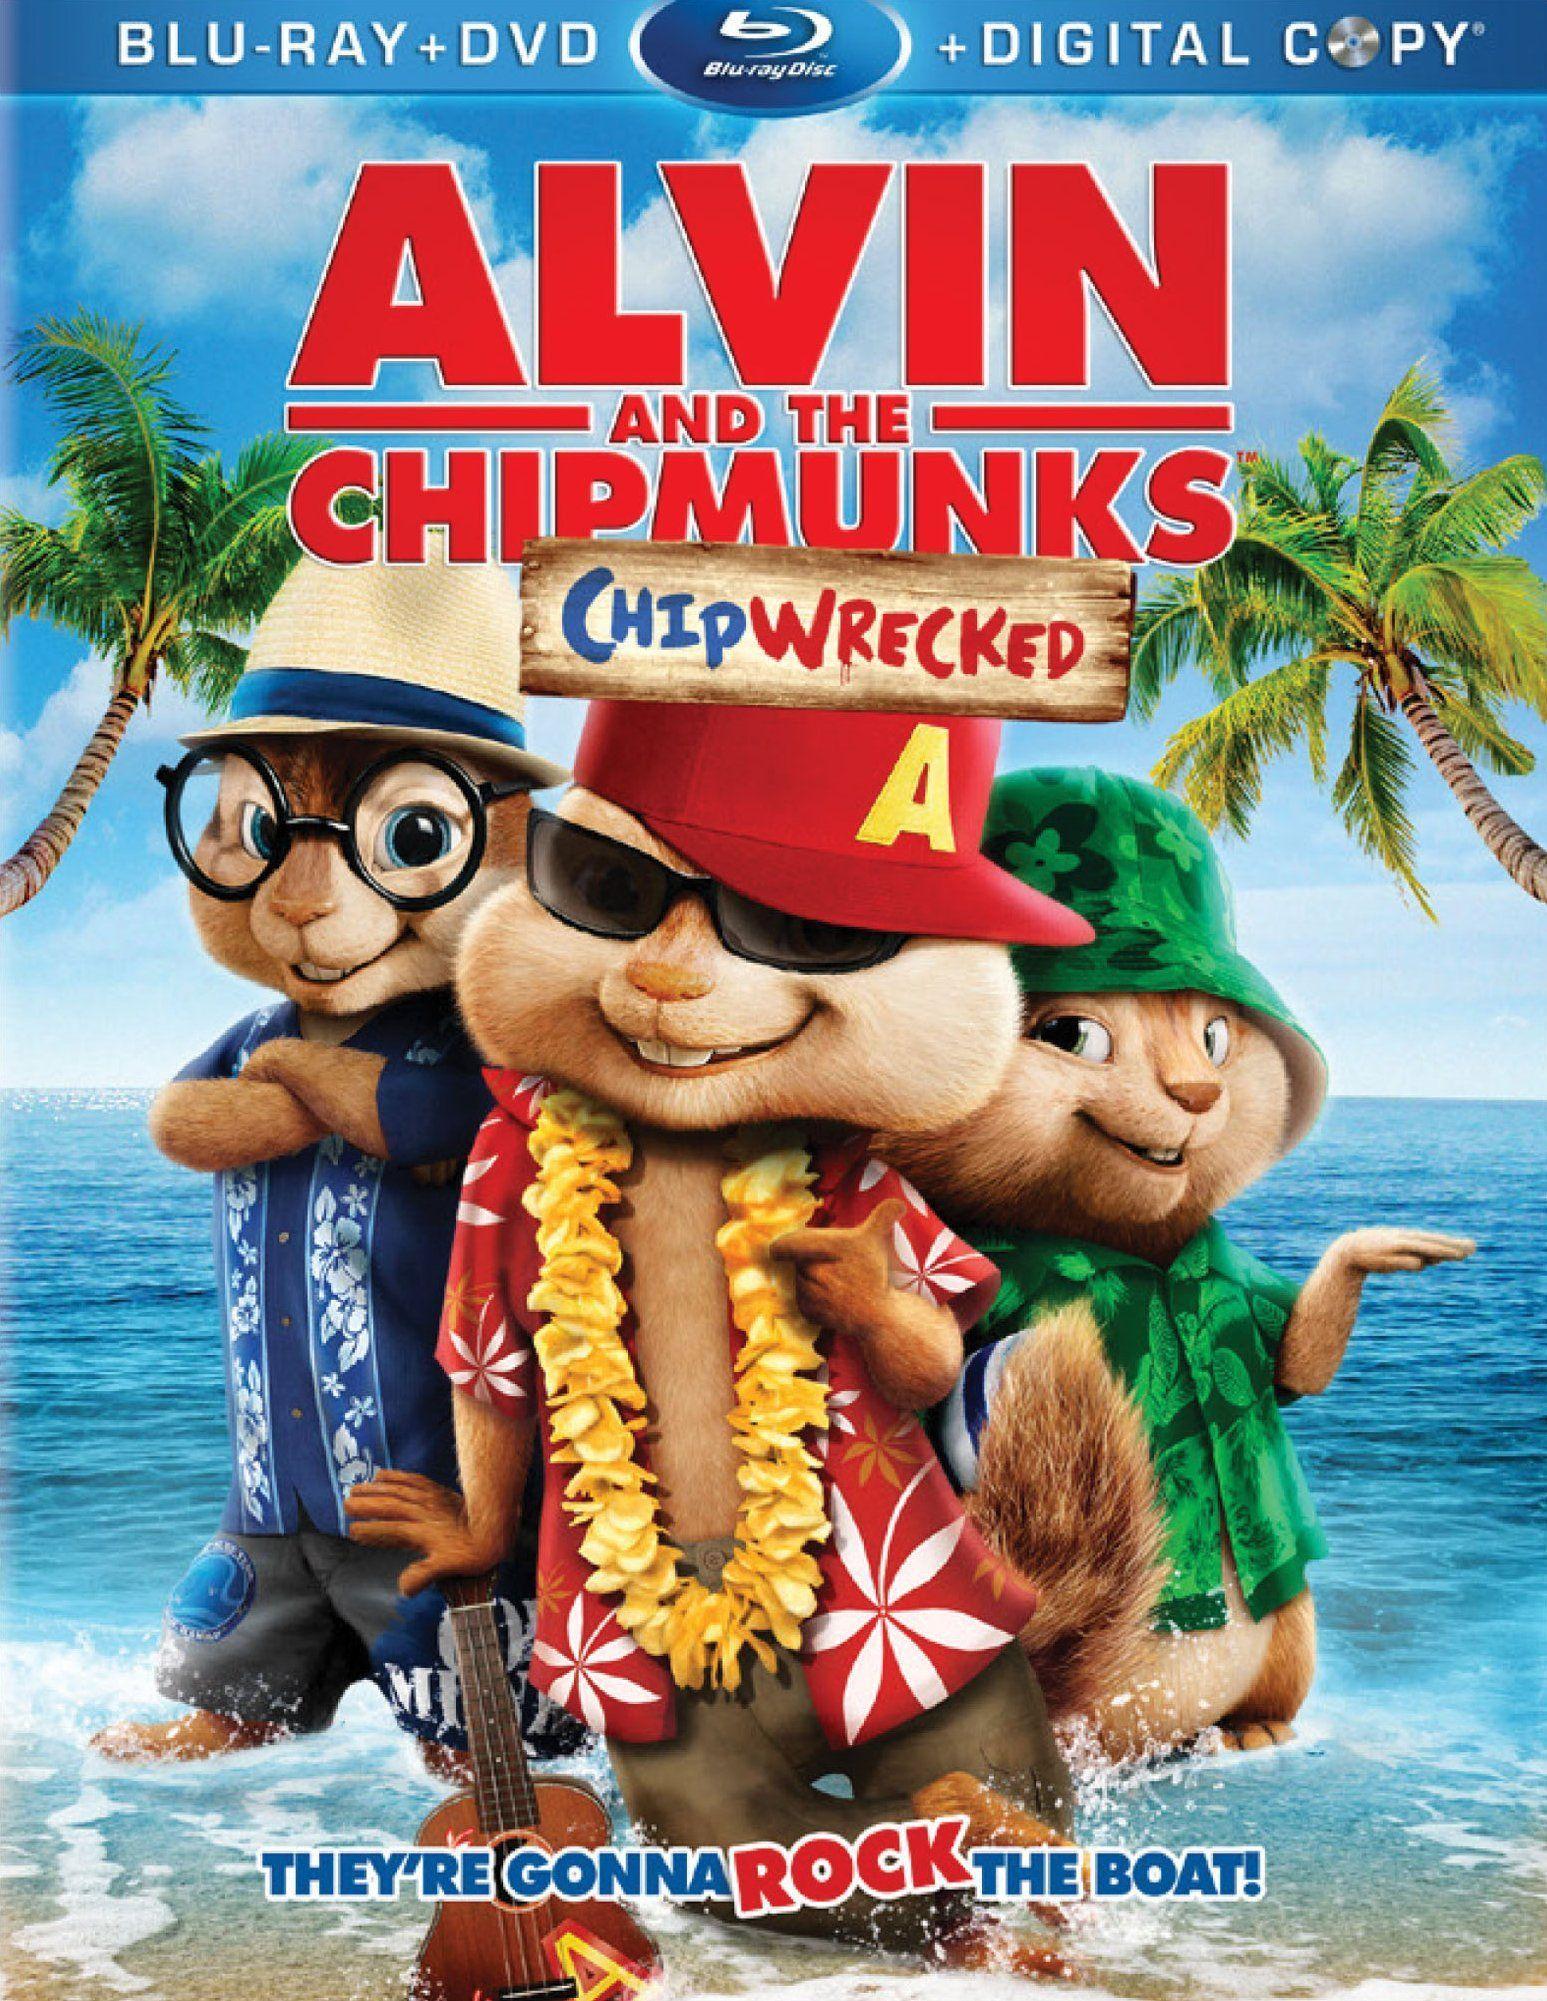 Alvin And The Chipmunks Having Sex alvin and the chipmunks chipwrecked (2011) | alvin, the